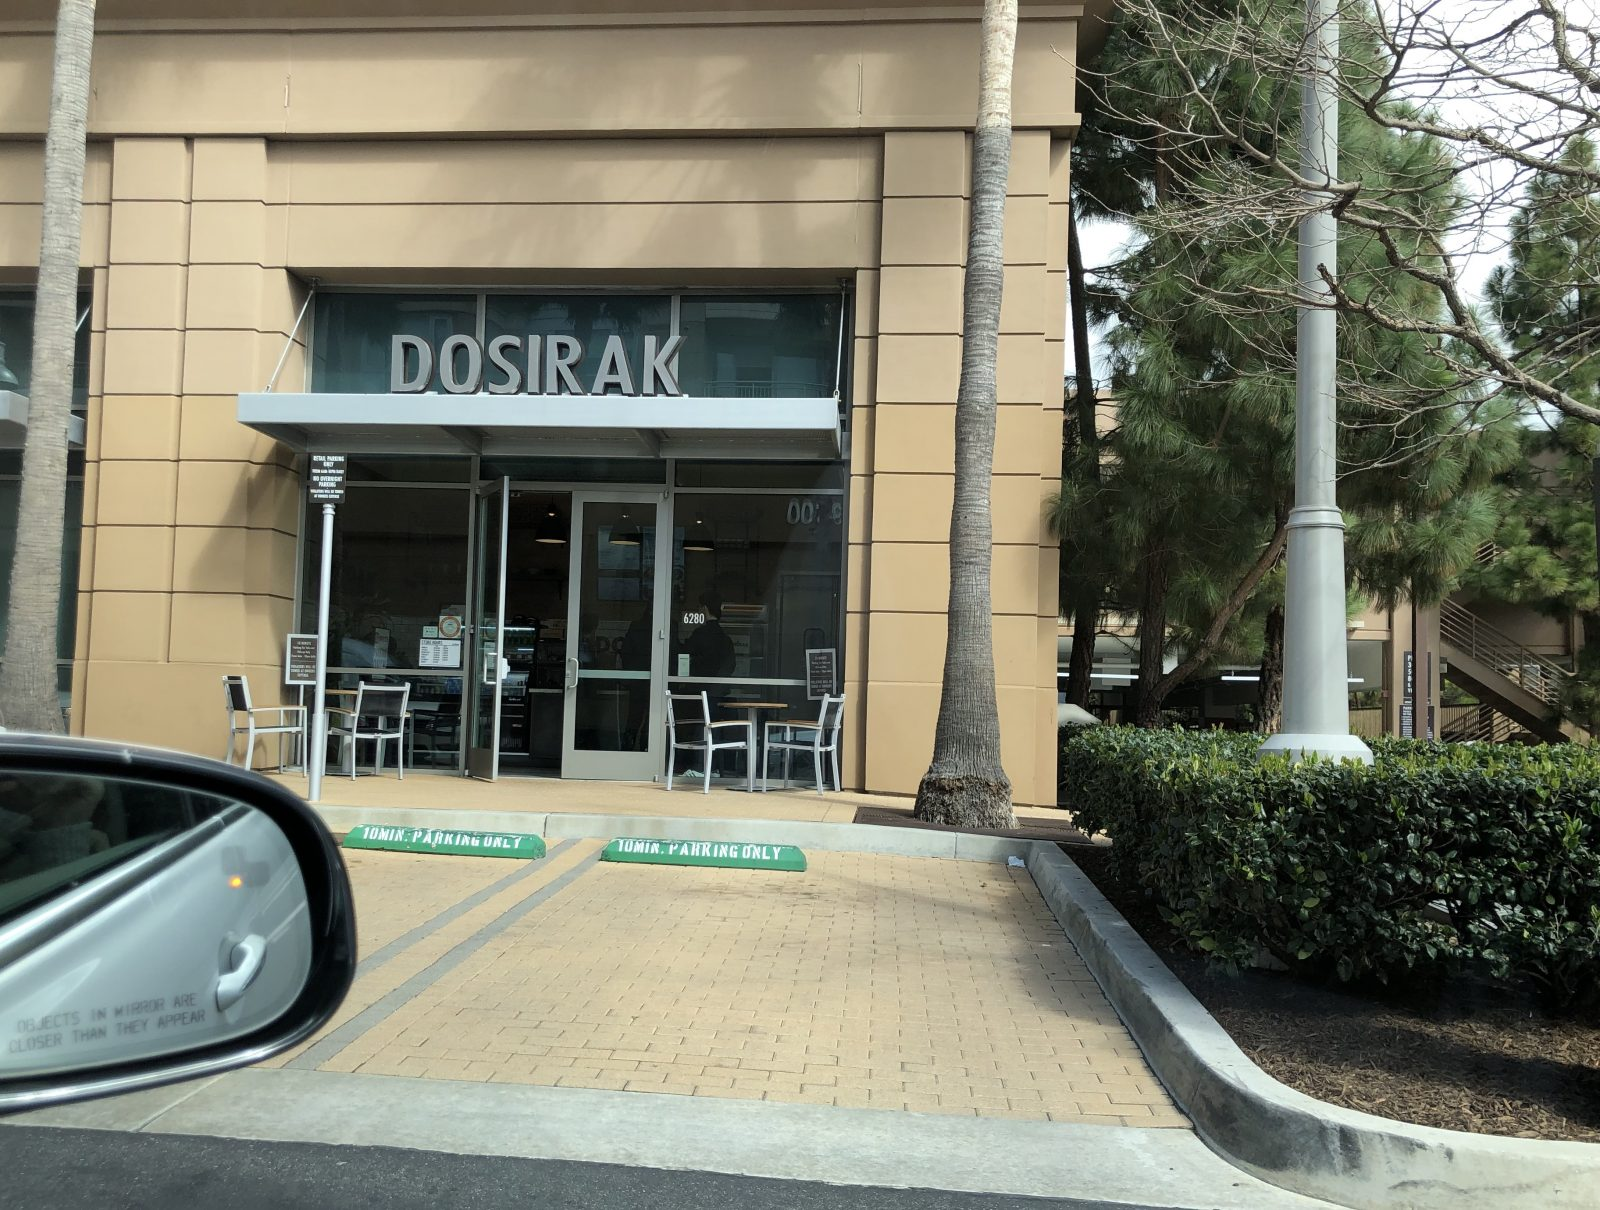 Dosirak Korean Restaurant in Irvine California - Exterior